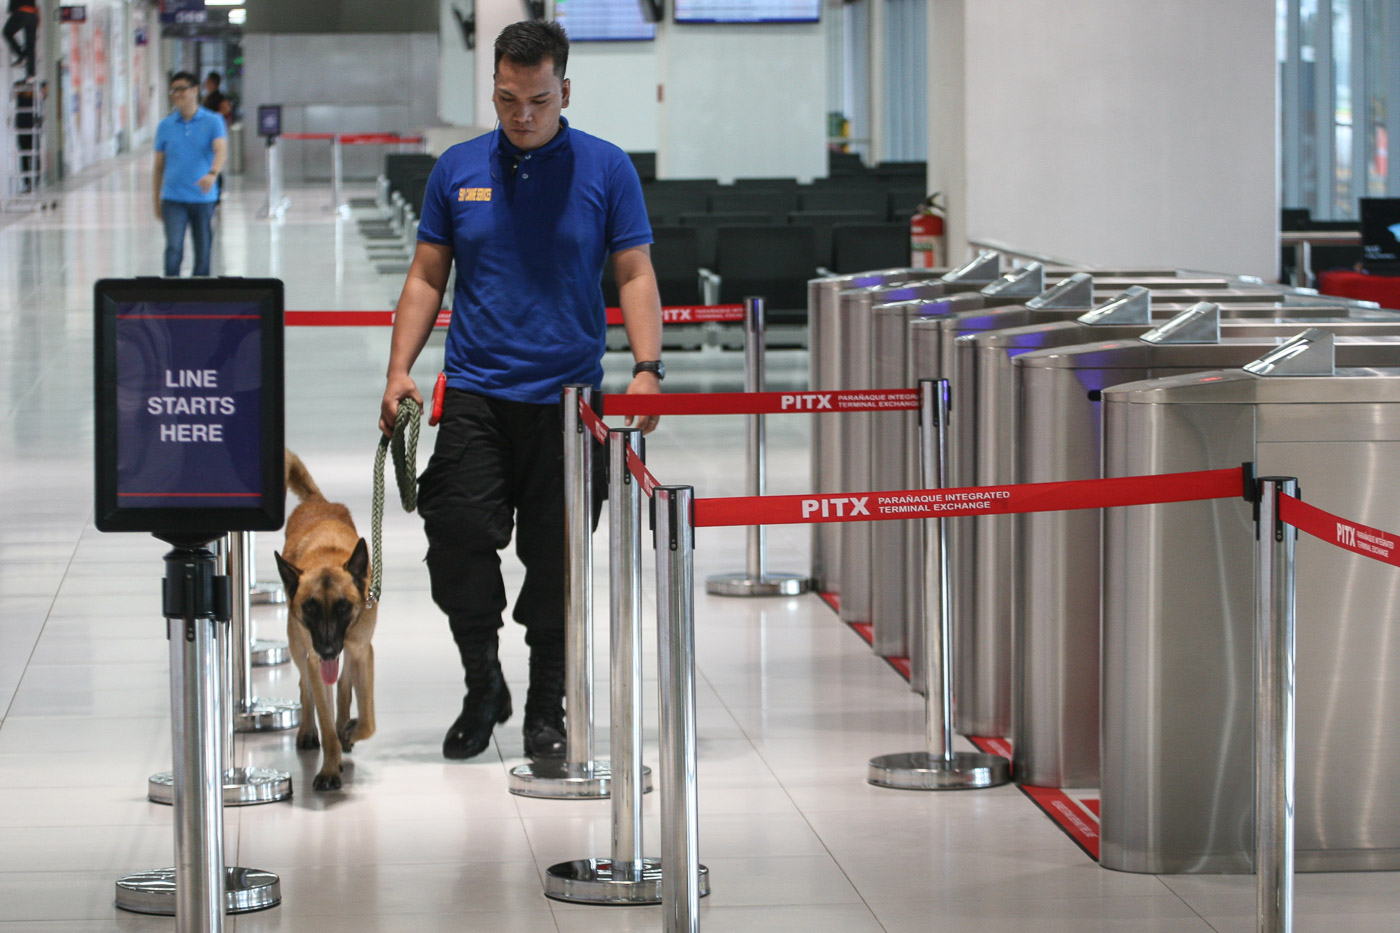 SECURITY. Aside from CCTV cameras, the terminal will have roving security guards and K-9 dogs. Photo by Ben Nabong/Rappler